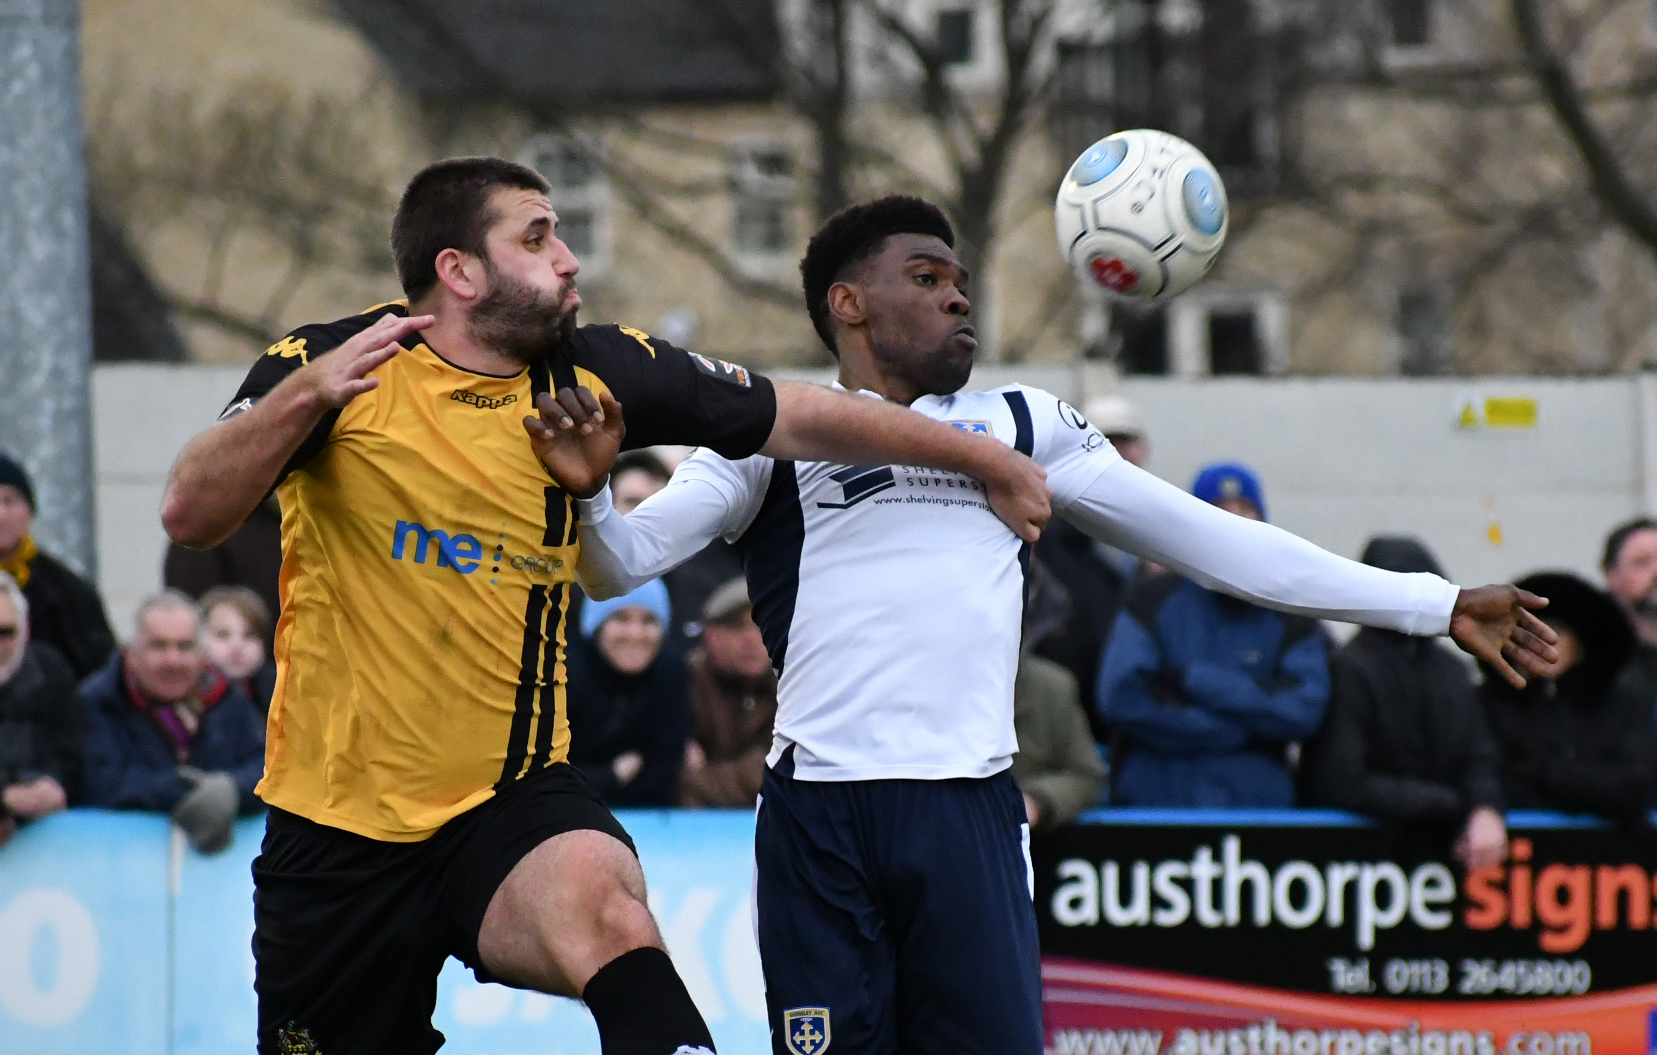 Guiseley's Kayode Odejayi, right, battles for the ball with Southport's Ryan Astles in the Lions' last Vanarama National League North clash earlier this month. Picture: Richard Leach